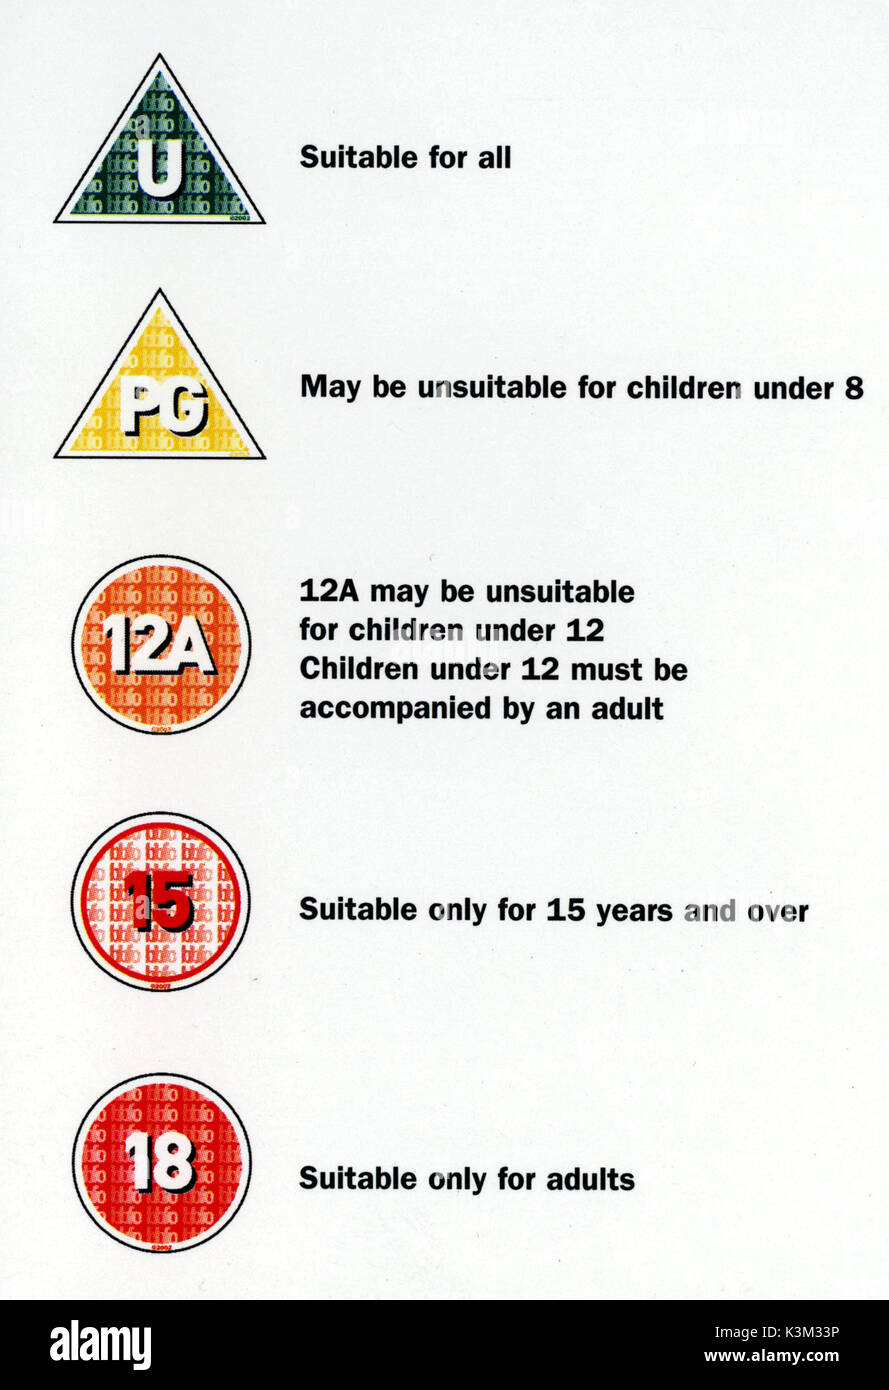 Film censorship symbols: U , PG , 12A (may be unsuitable for children under 12, children under 12 must be accompanied by an adult), 15 (suitable only for 15 years and over), 18 (suitable only for adults). - Stock Image